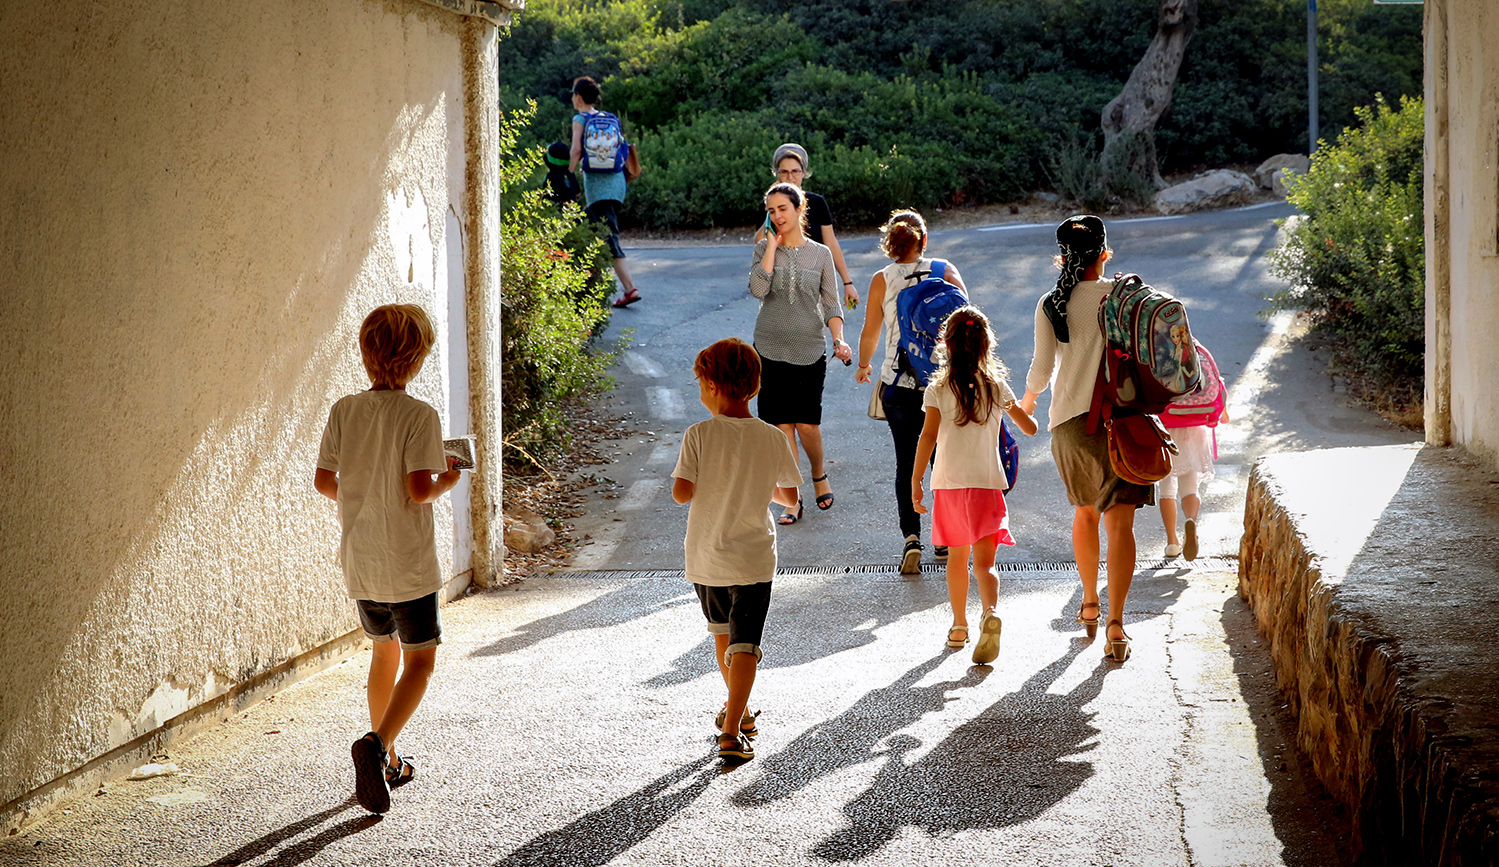 Children on the first day of school in Jerusalem, September 1, 2017. Yossi Zamir/Flash90.